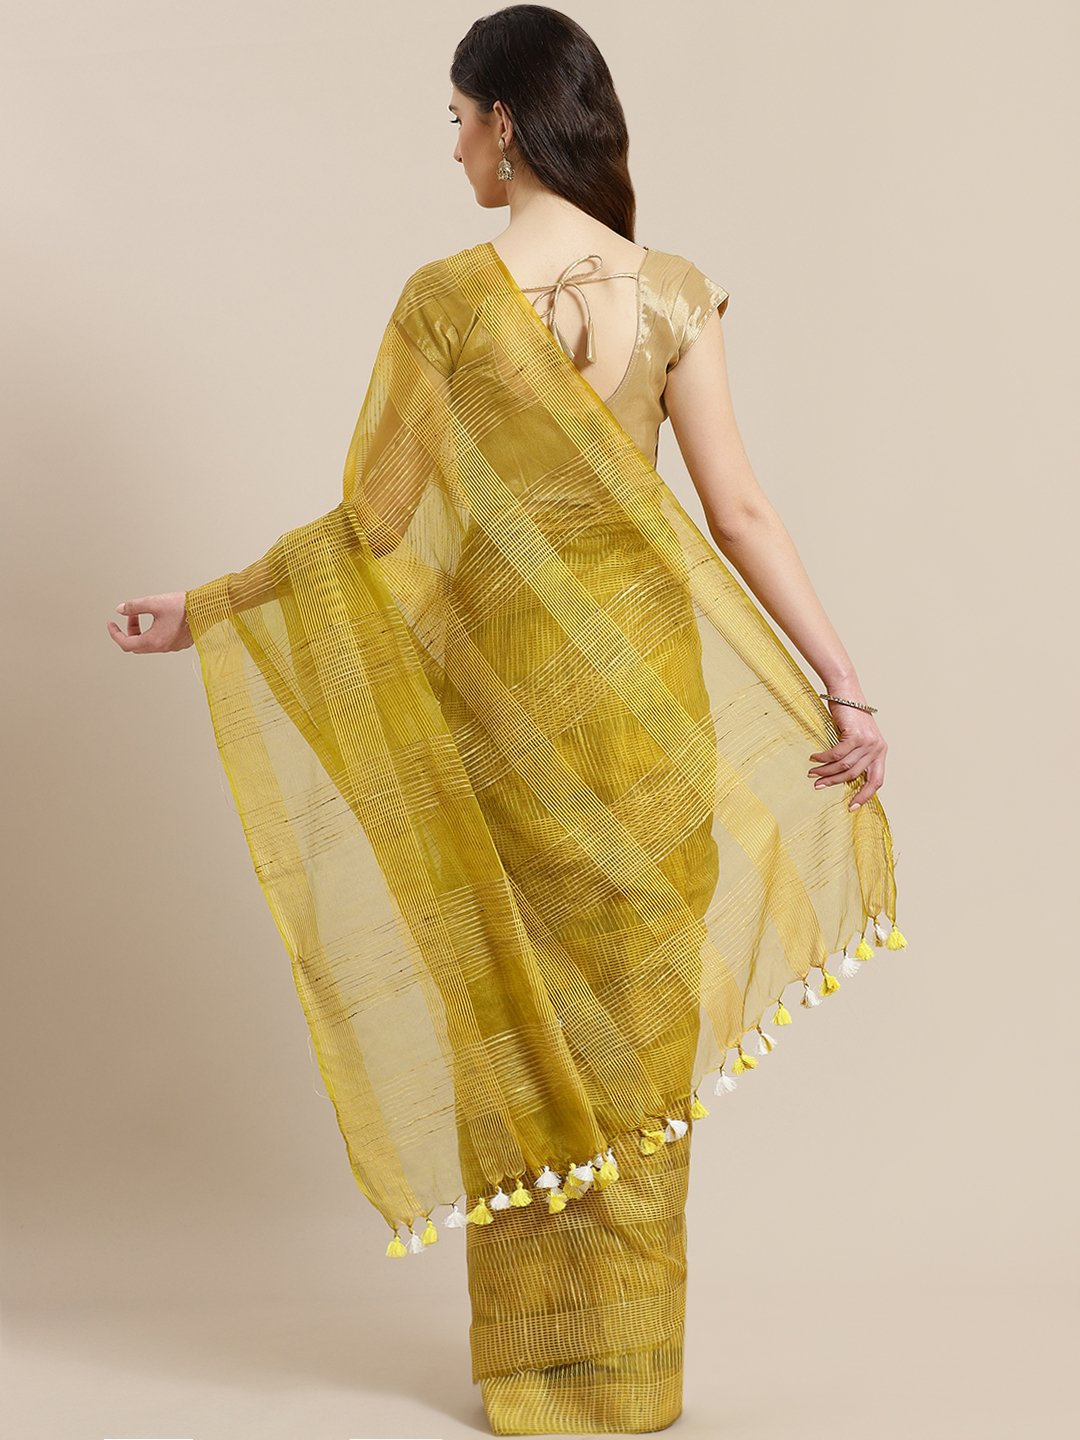 Green Mustard Yellow Self-Checked Handwoven Saree-Saree-Kalakari India-ALBGSA0014-Hand Crafted Sustainable Fabrics, Kota Silk, Linen, Sarees, Traditional Weave-[Linen,Ethnic,wear,Fashionista,Handloom,Handicraft,Indigo,blockprint,block,print,Cotton,Chanderi,Blue, latest,classy,party,bollywood,trendy,summer,style,traditional,formal,elegant,unique,style,hand,block,print, dabu,booti,gift,present,glamorous,affordable,collectible,Sari,Saree,printed, holi, Diwali, birthday, anniversary, sustainable, or